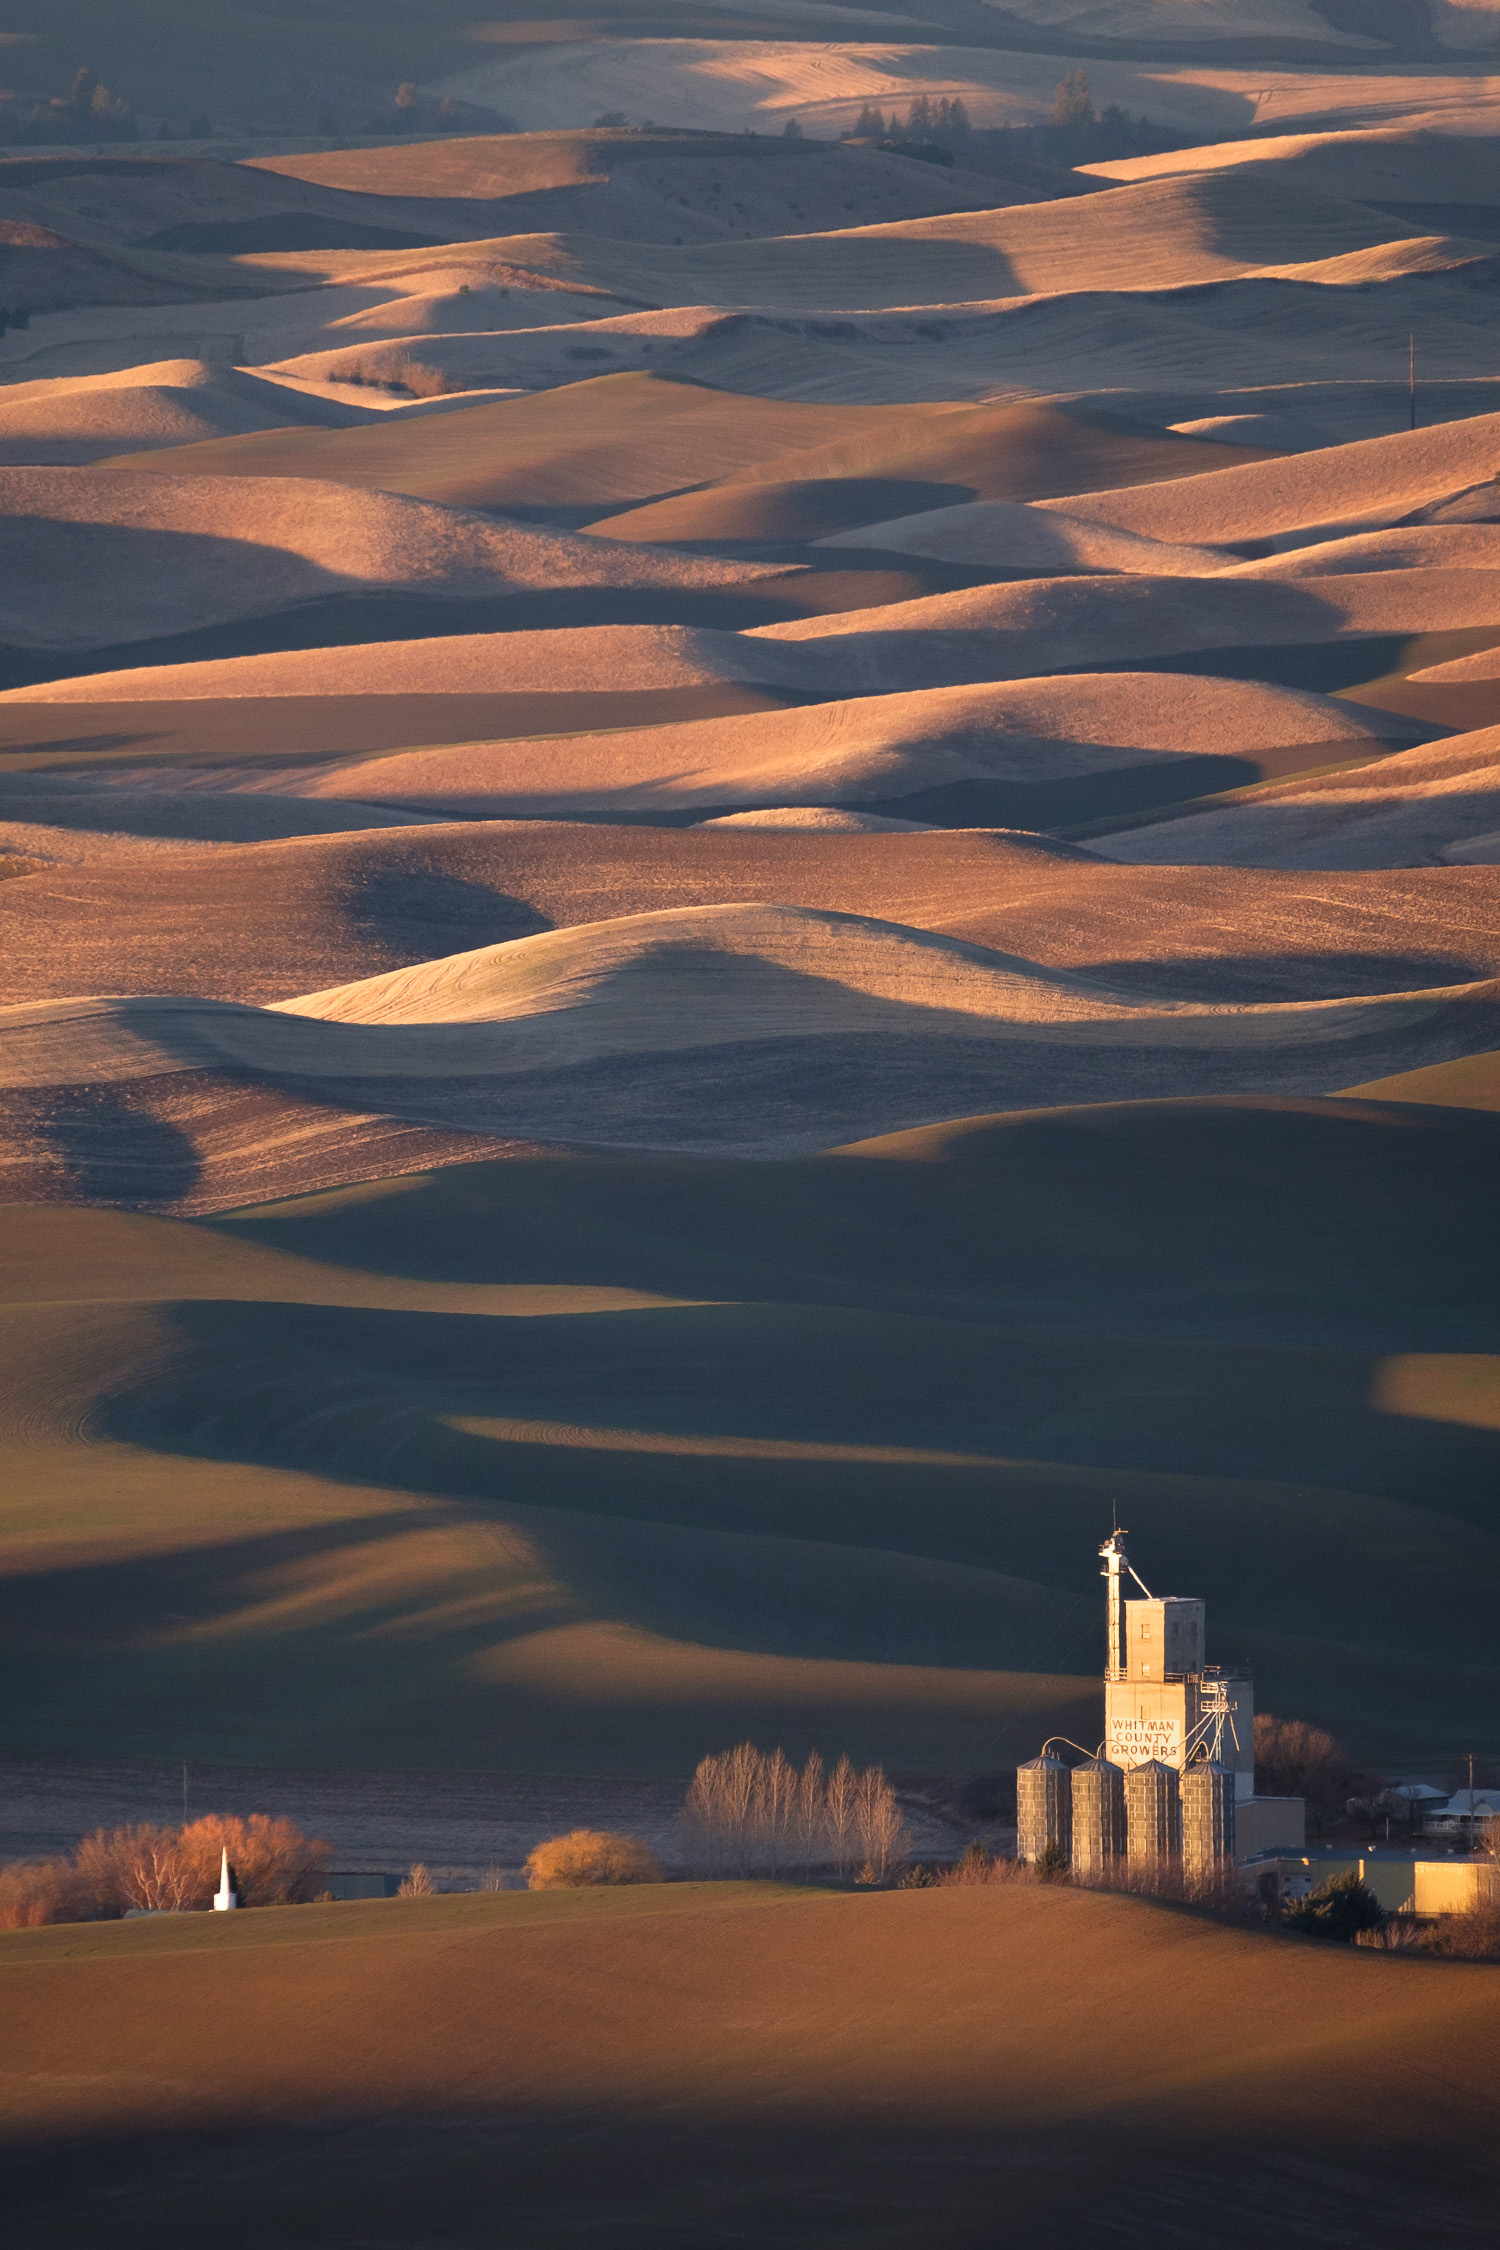 The Whitman County Growers grain elevator near Steptoe, WA, from the summit of Steptoe Butte